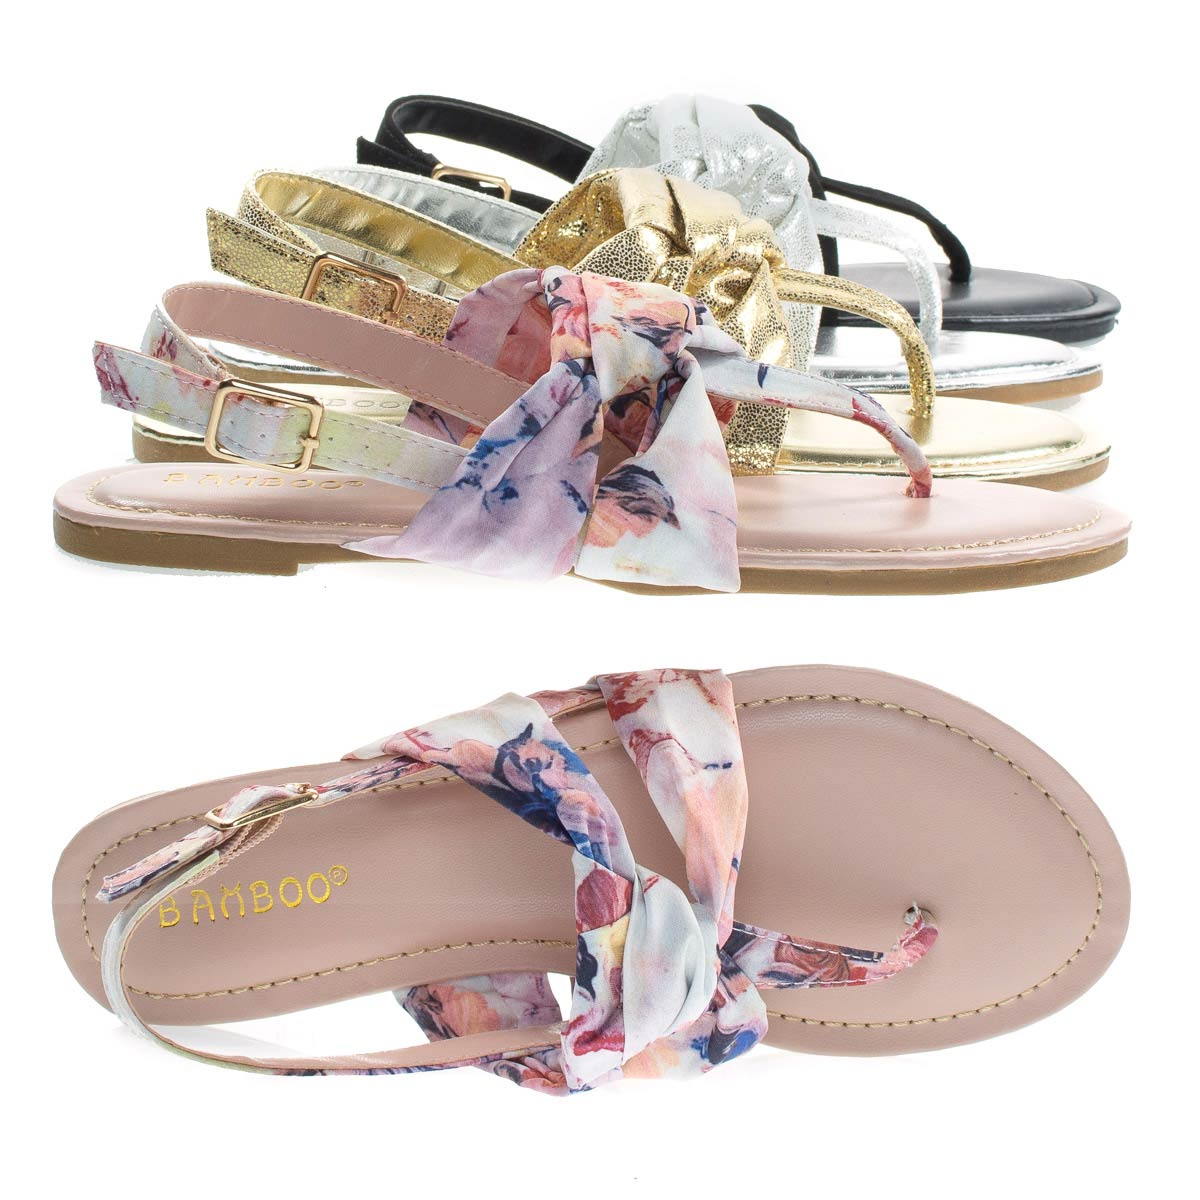 Yolo24s by Bamboo, Women Flat Thong Sandal W Metallic & Print Fabric In Sling back Strap